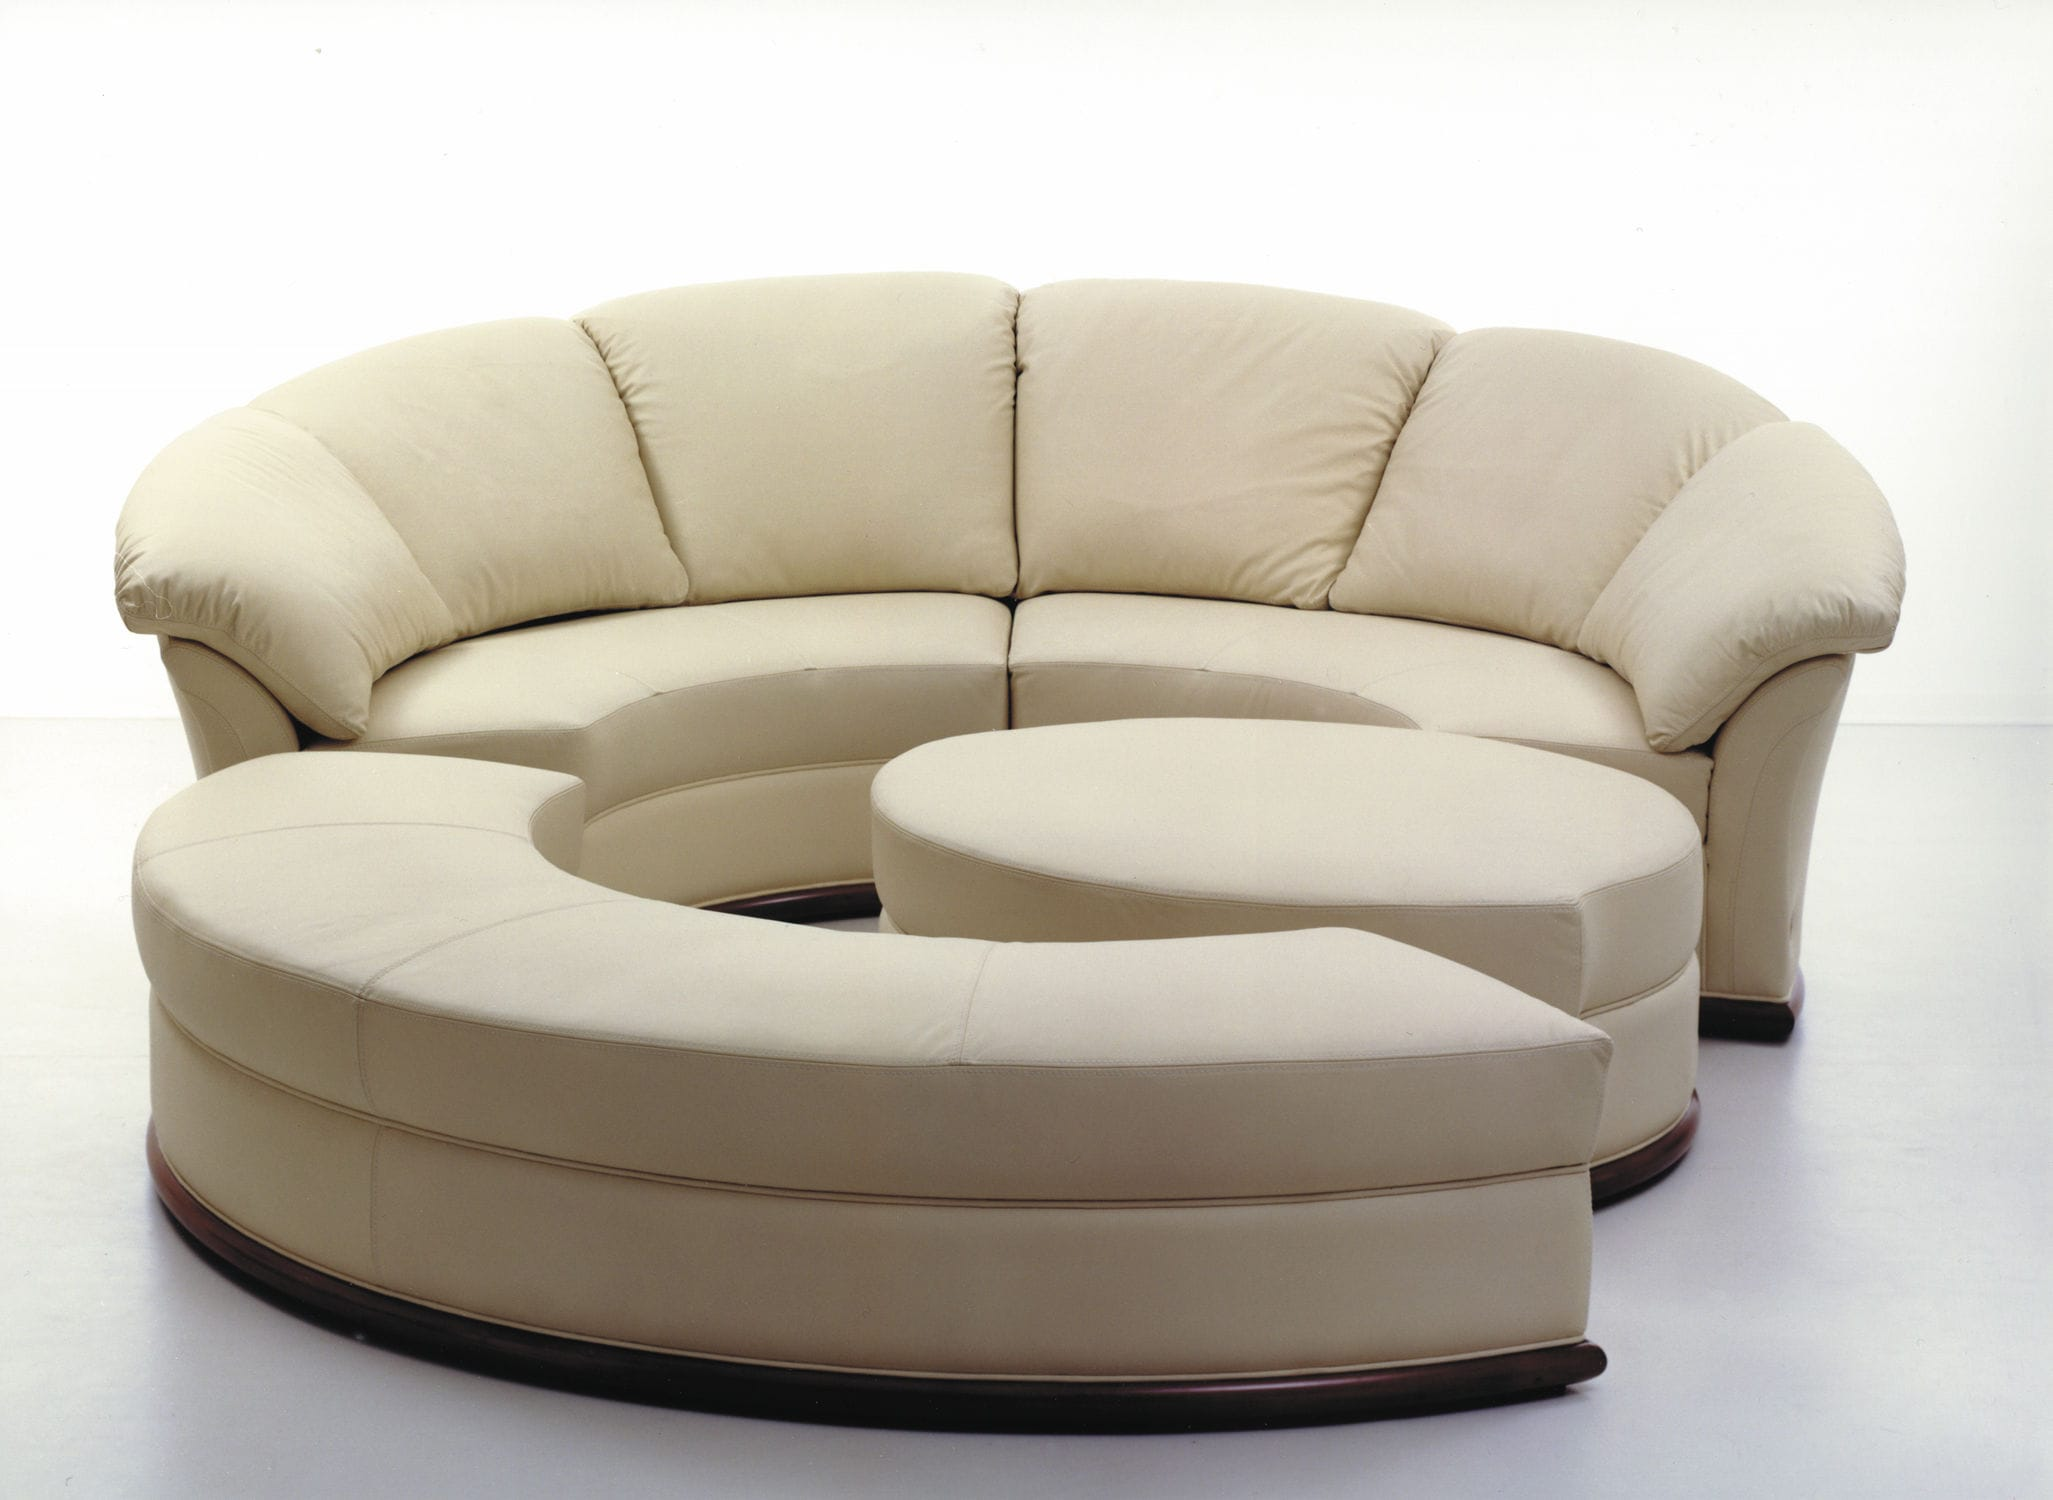 Round sofa modular contemporary leather